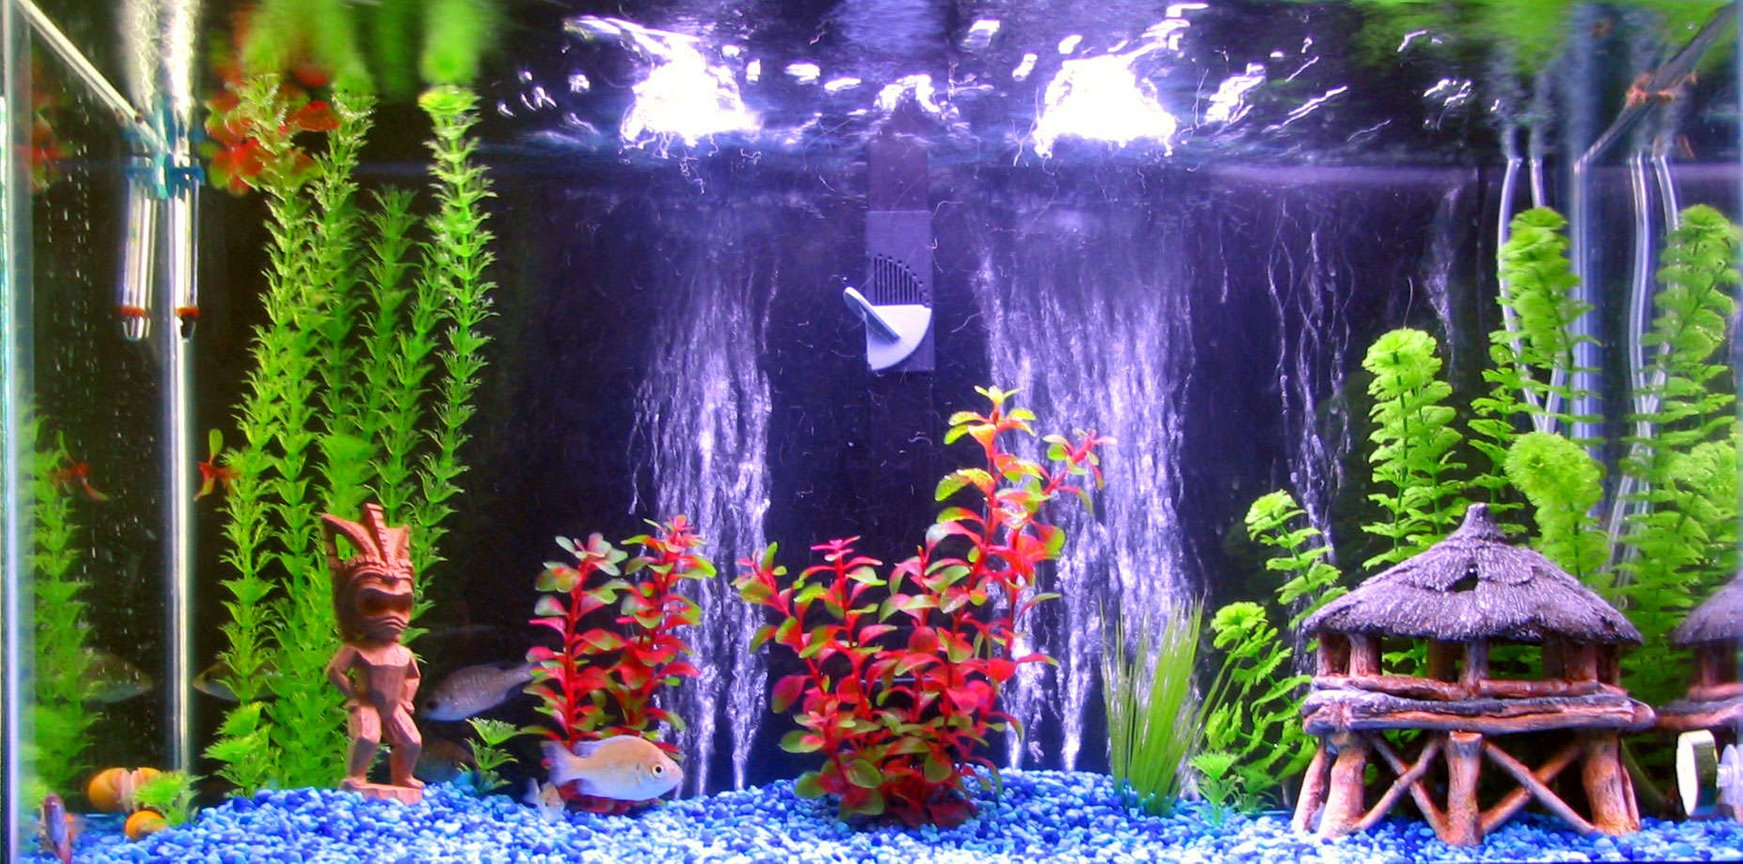 30 gallons freshwater fish tank (mostly fish and non-living decorations) - 30gal Freshwater